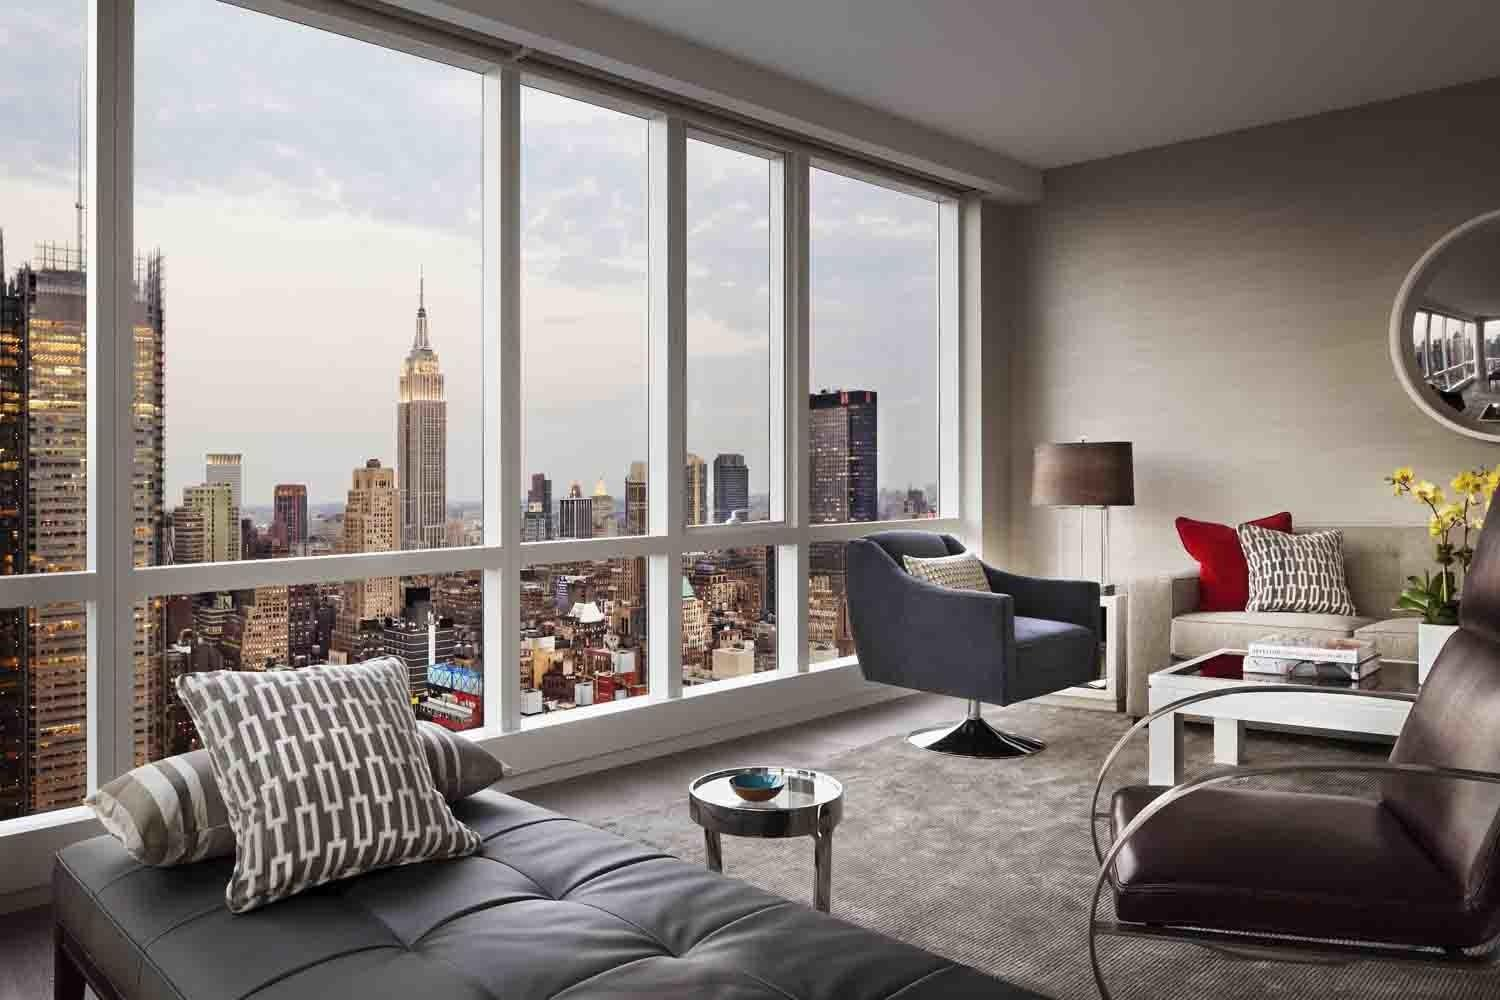 New York City Luxury Rental Blog Archives July 2012